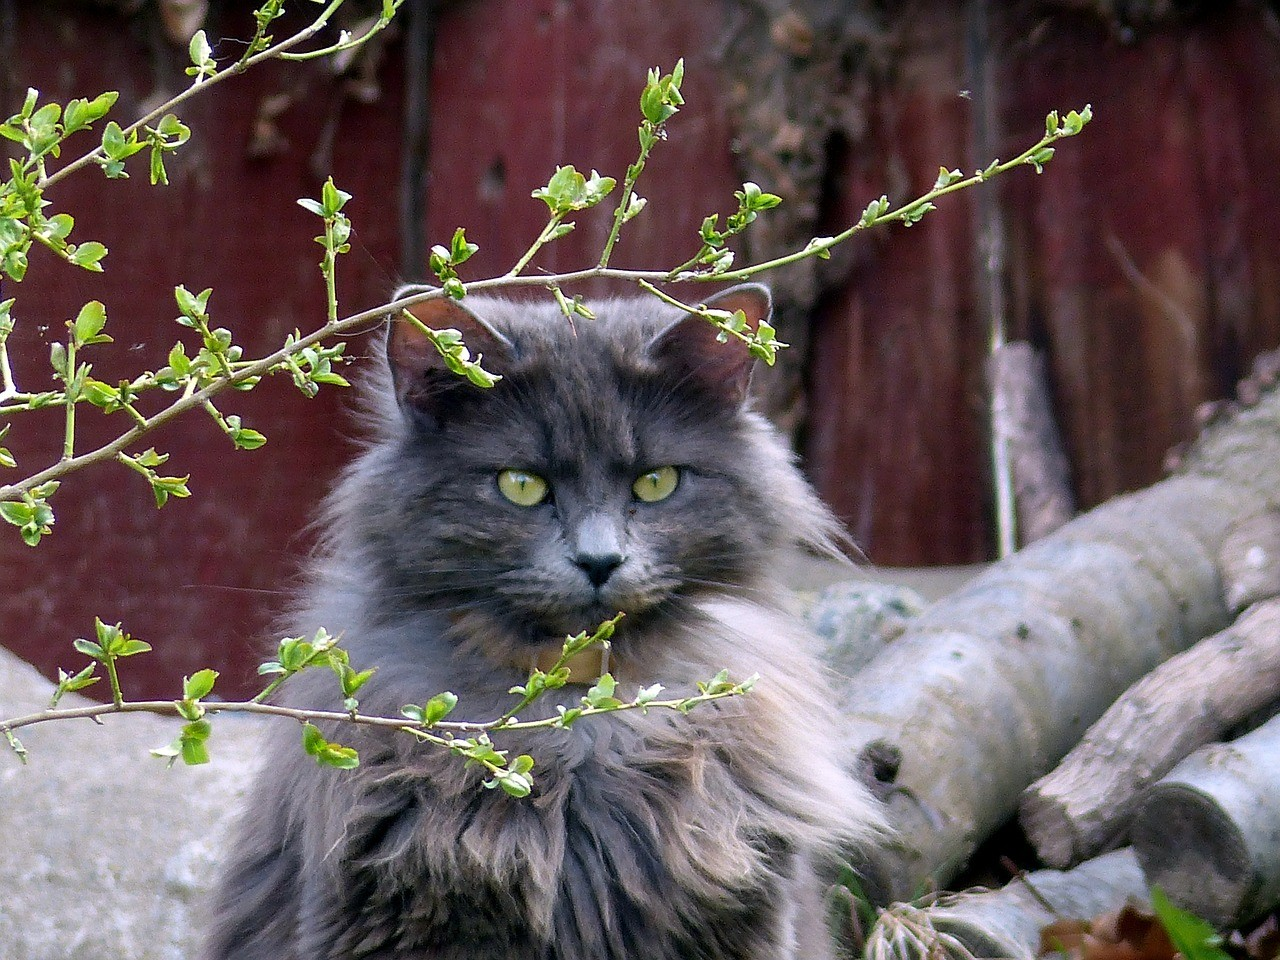 Sassy grey long-haired cat